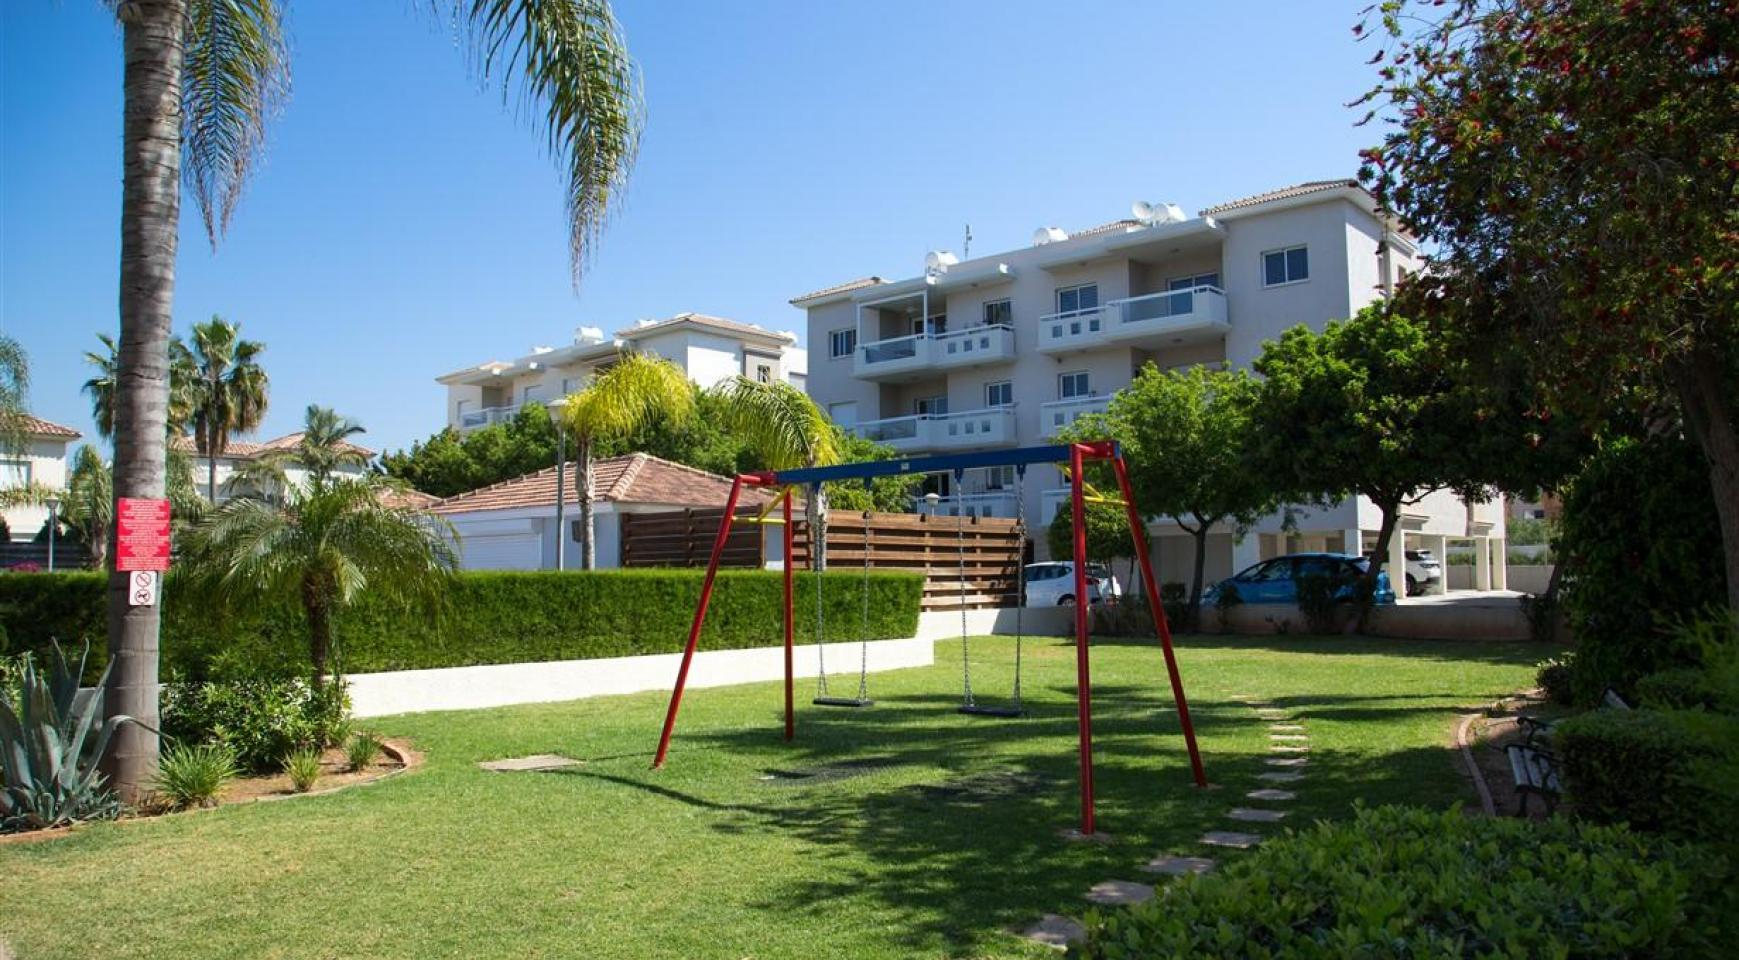 Luxury 2 Bedroom Apartment Mesogios Iris 304 in the Tourist area near the Beach - 34